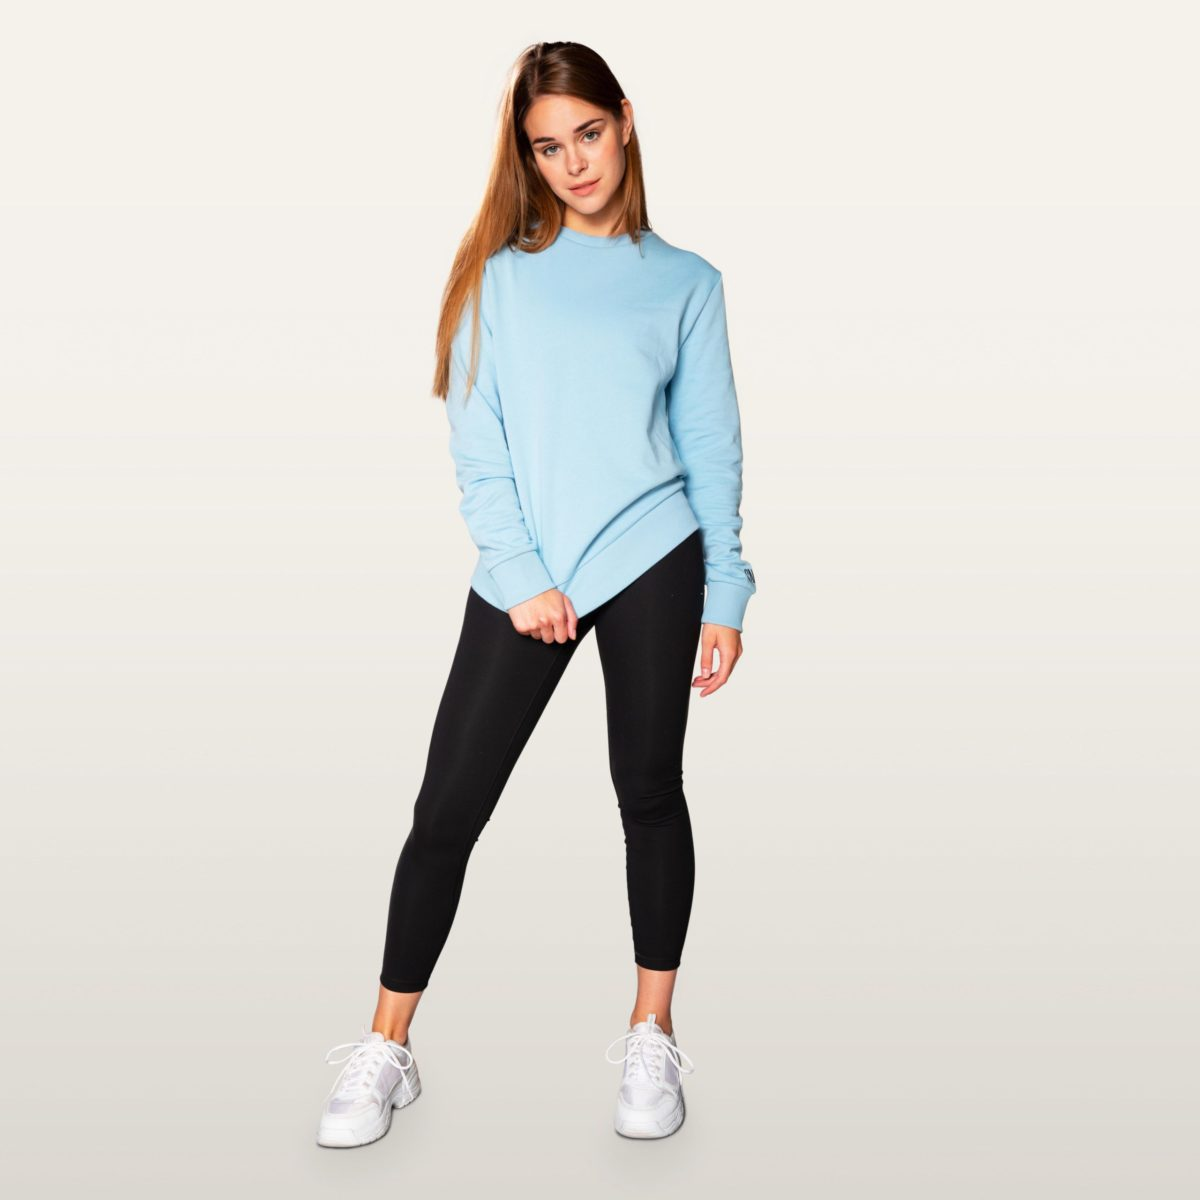 light blue sweater snap climbing men and women